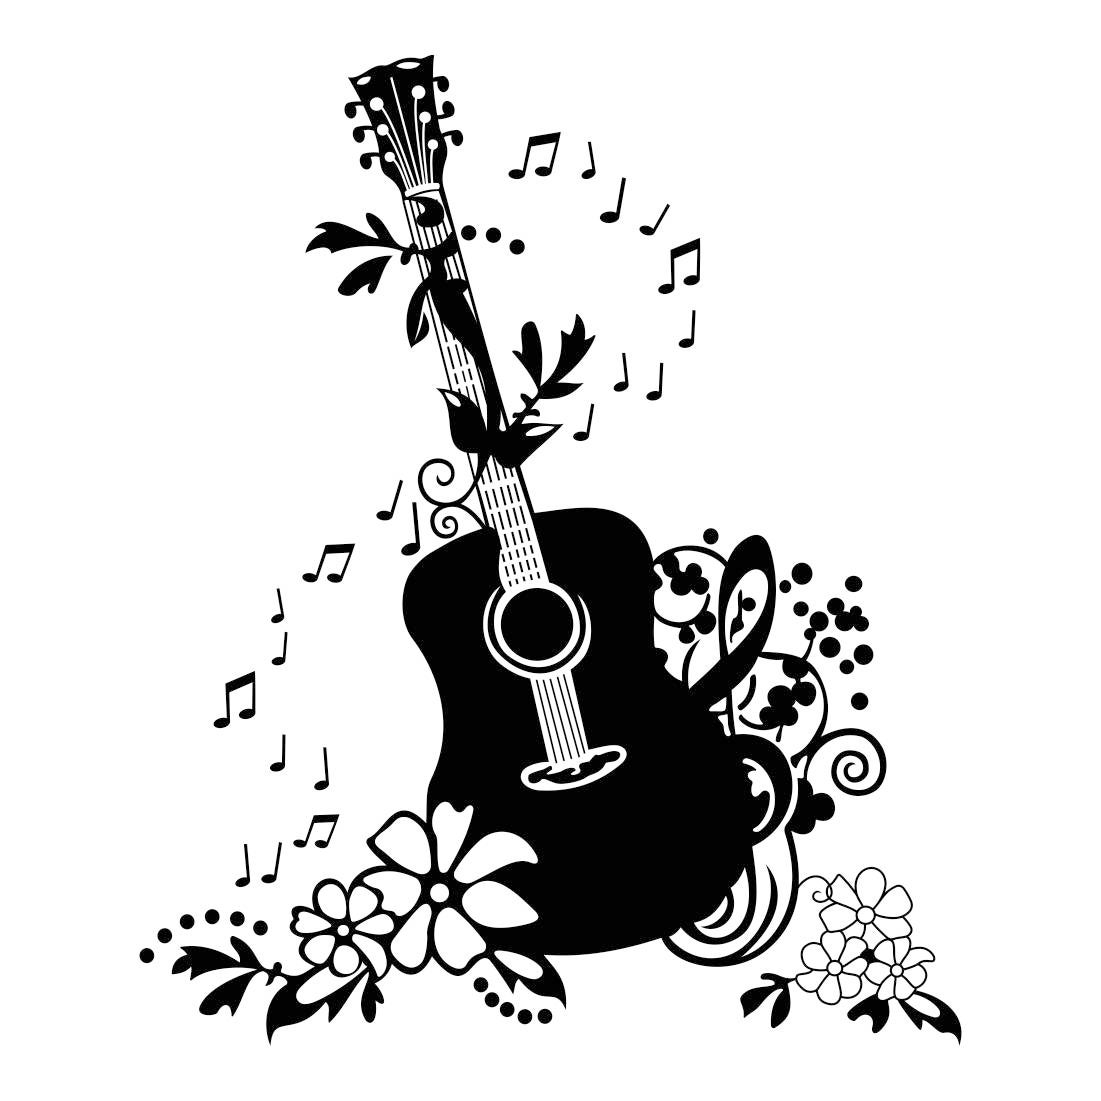 Decorative Guitar Music Graphics SVG Dxf EPS Png Cdr Ai Pdf